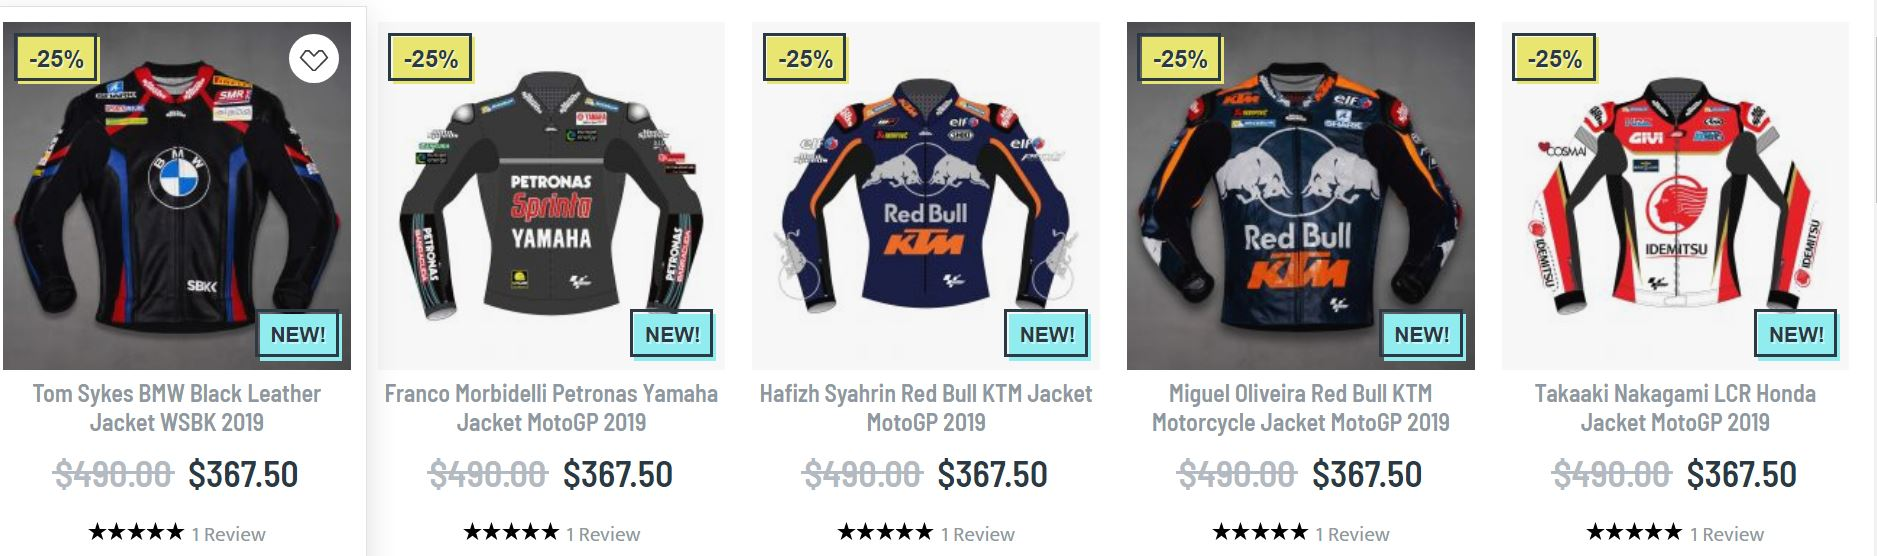 Motogp riding jacket